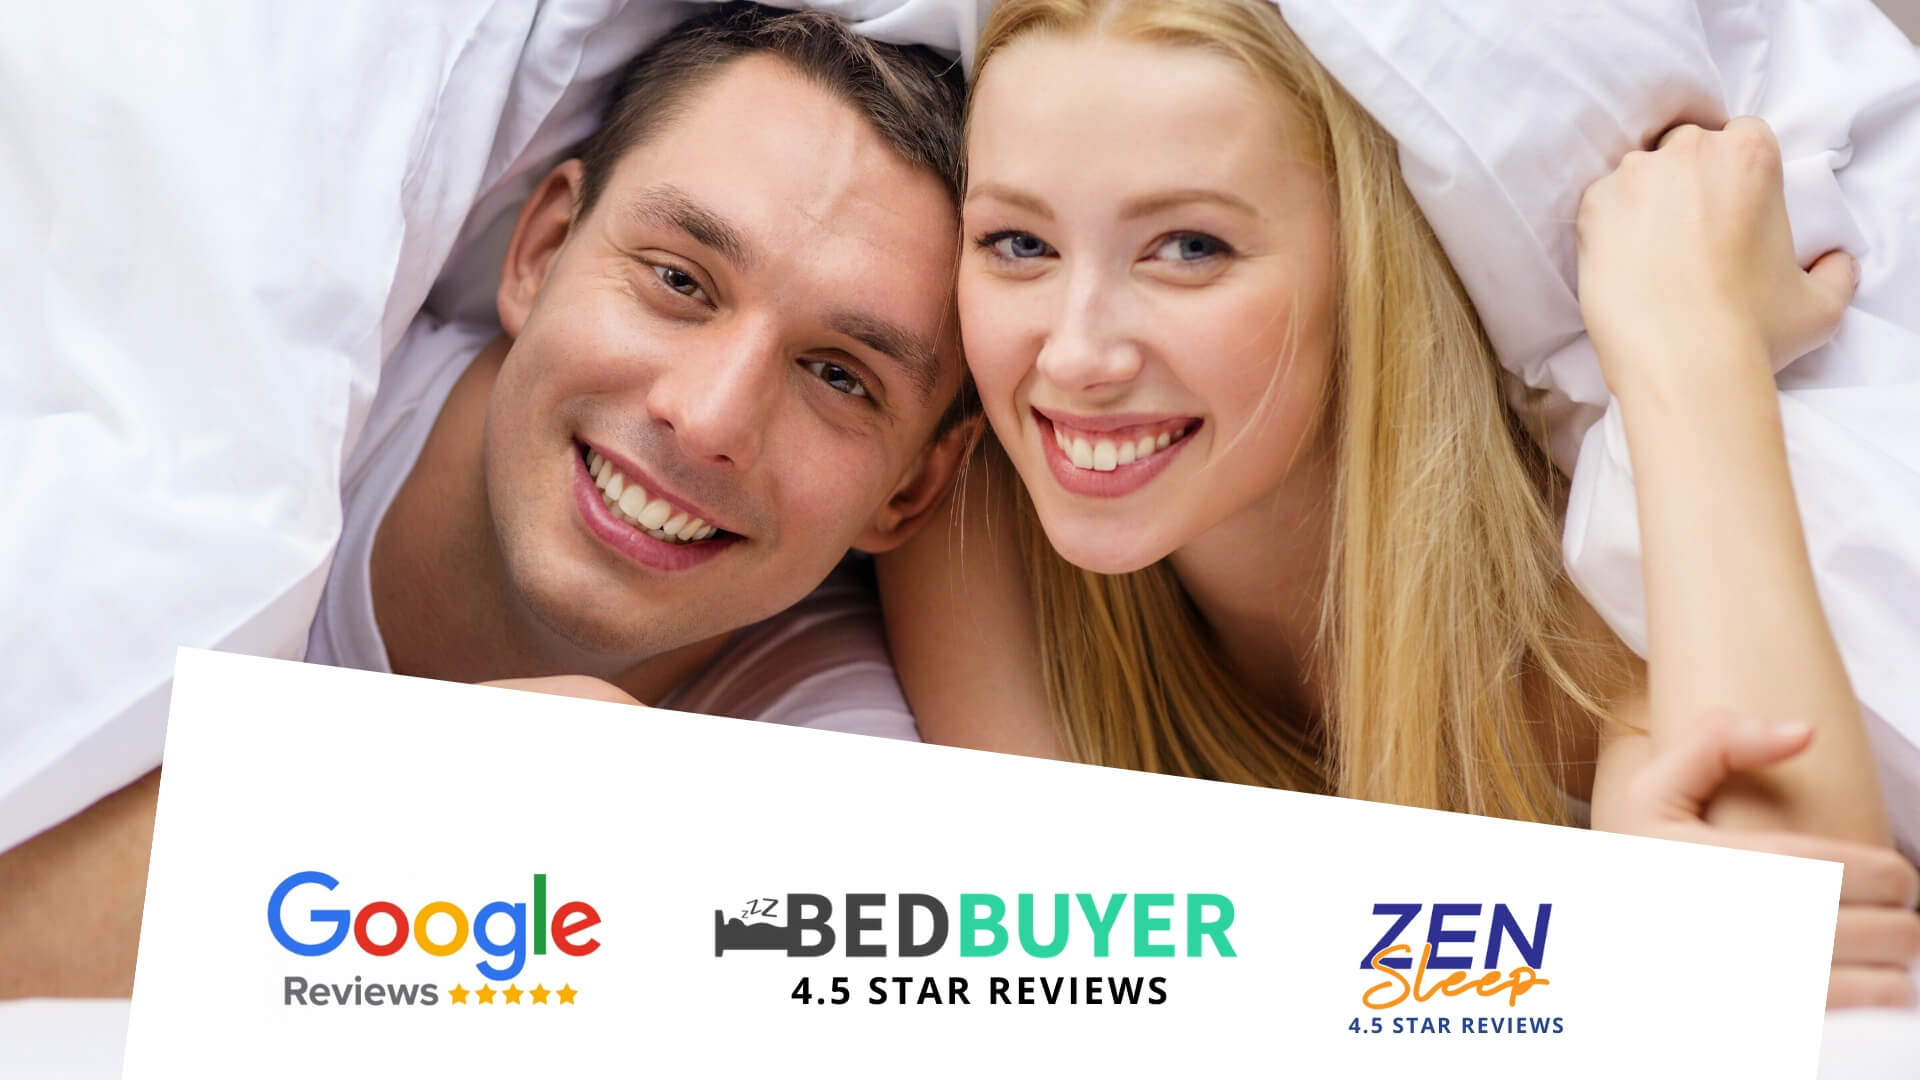 Zensleep-mattress-memoryfoam-mattress-backpain-relief-couple-sleeping-in-bed